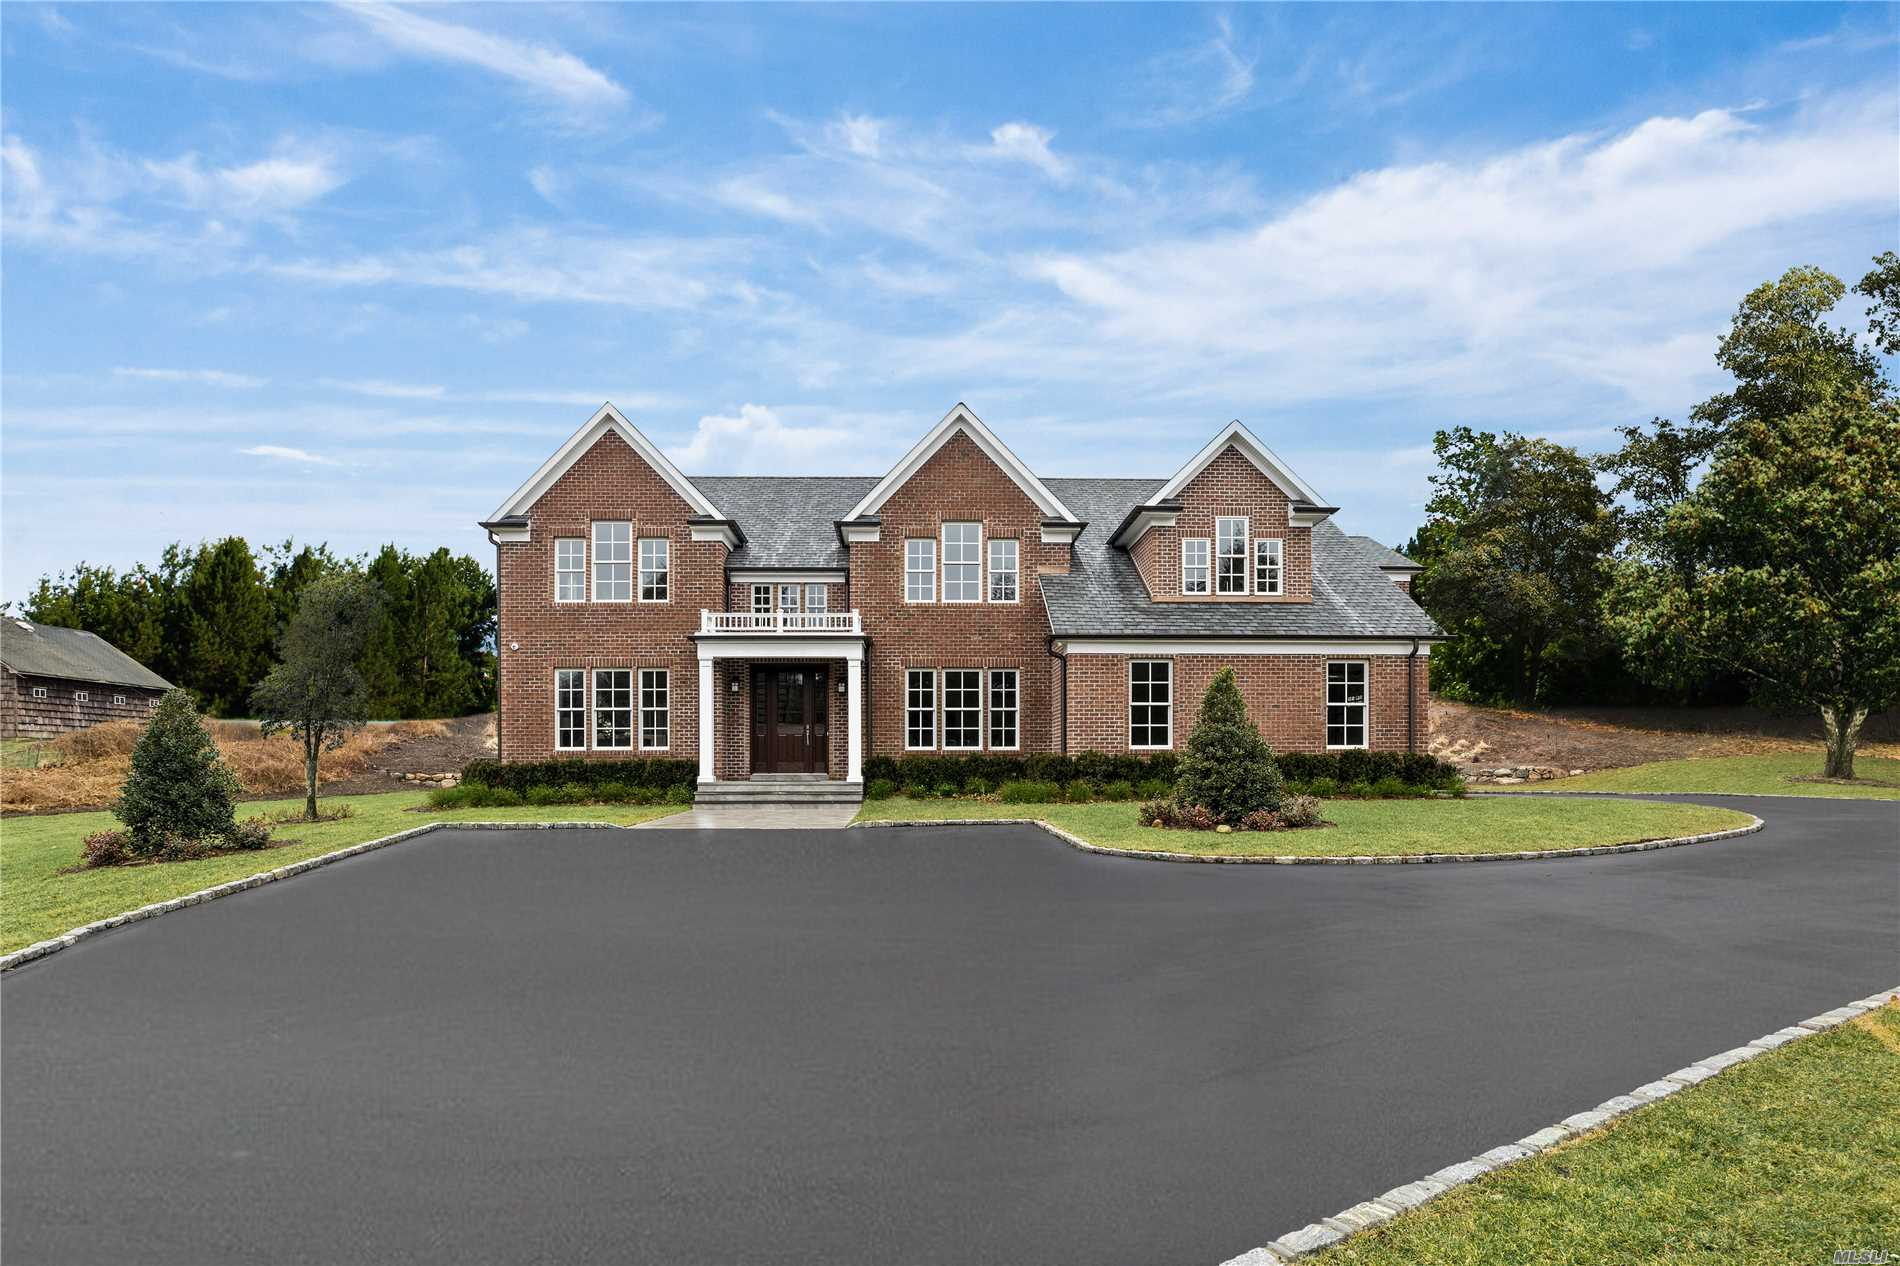 Photo of home for sale at 2 Cory Ct, Syosset NY